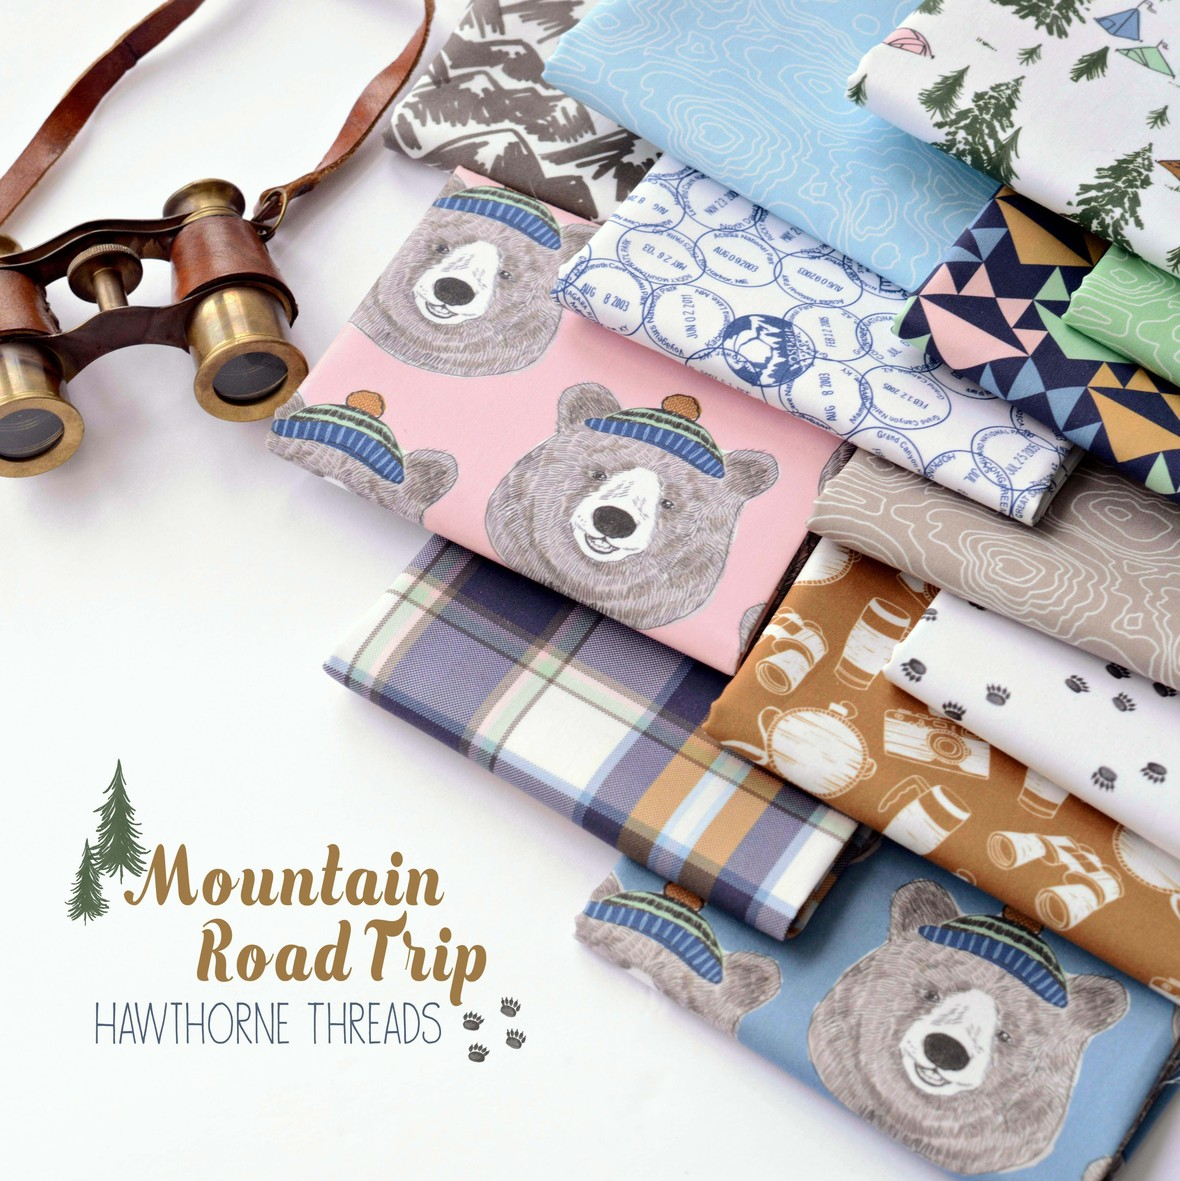 Mountain Road Trip Fabric Poster Hawthorne Threads